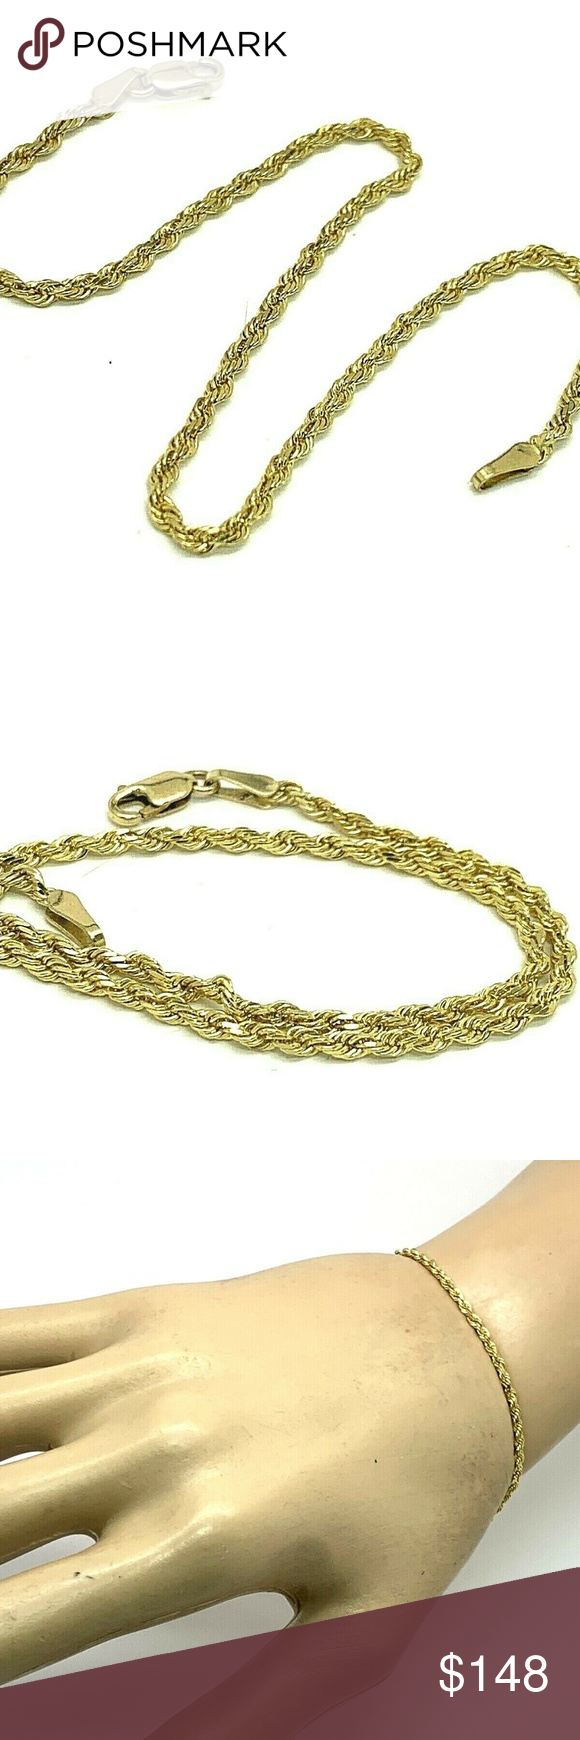 10k Yellow Gold Rope Bracelet 2mm Unisex 8 5 10k Yellow Gold Plain Rope Bracelet 2mm Unisex 8 5 Length Esta In 2020 Rope Bracelet Womens Jewelry Bracelets Bracelets